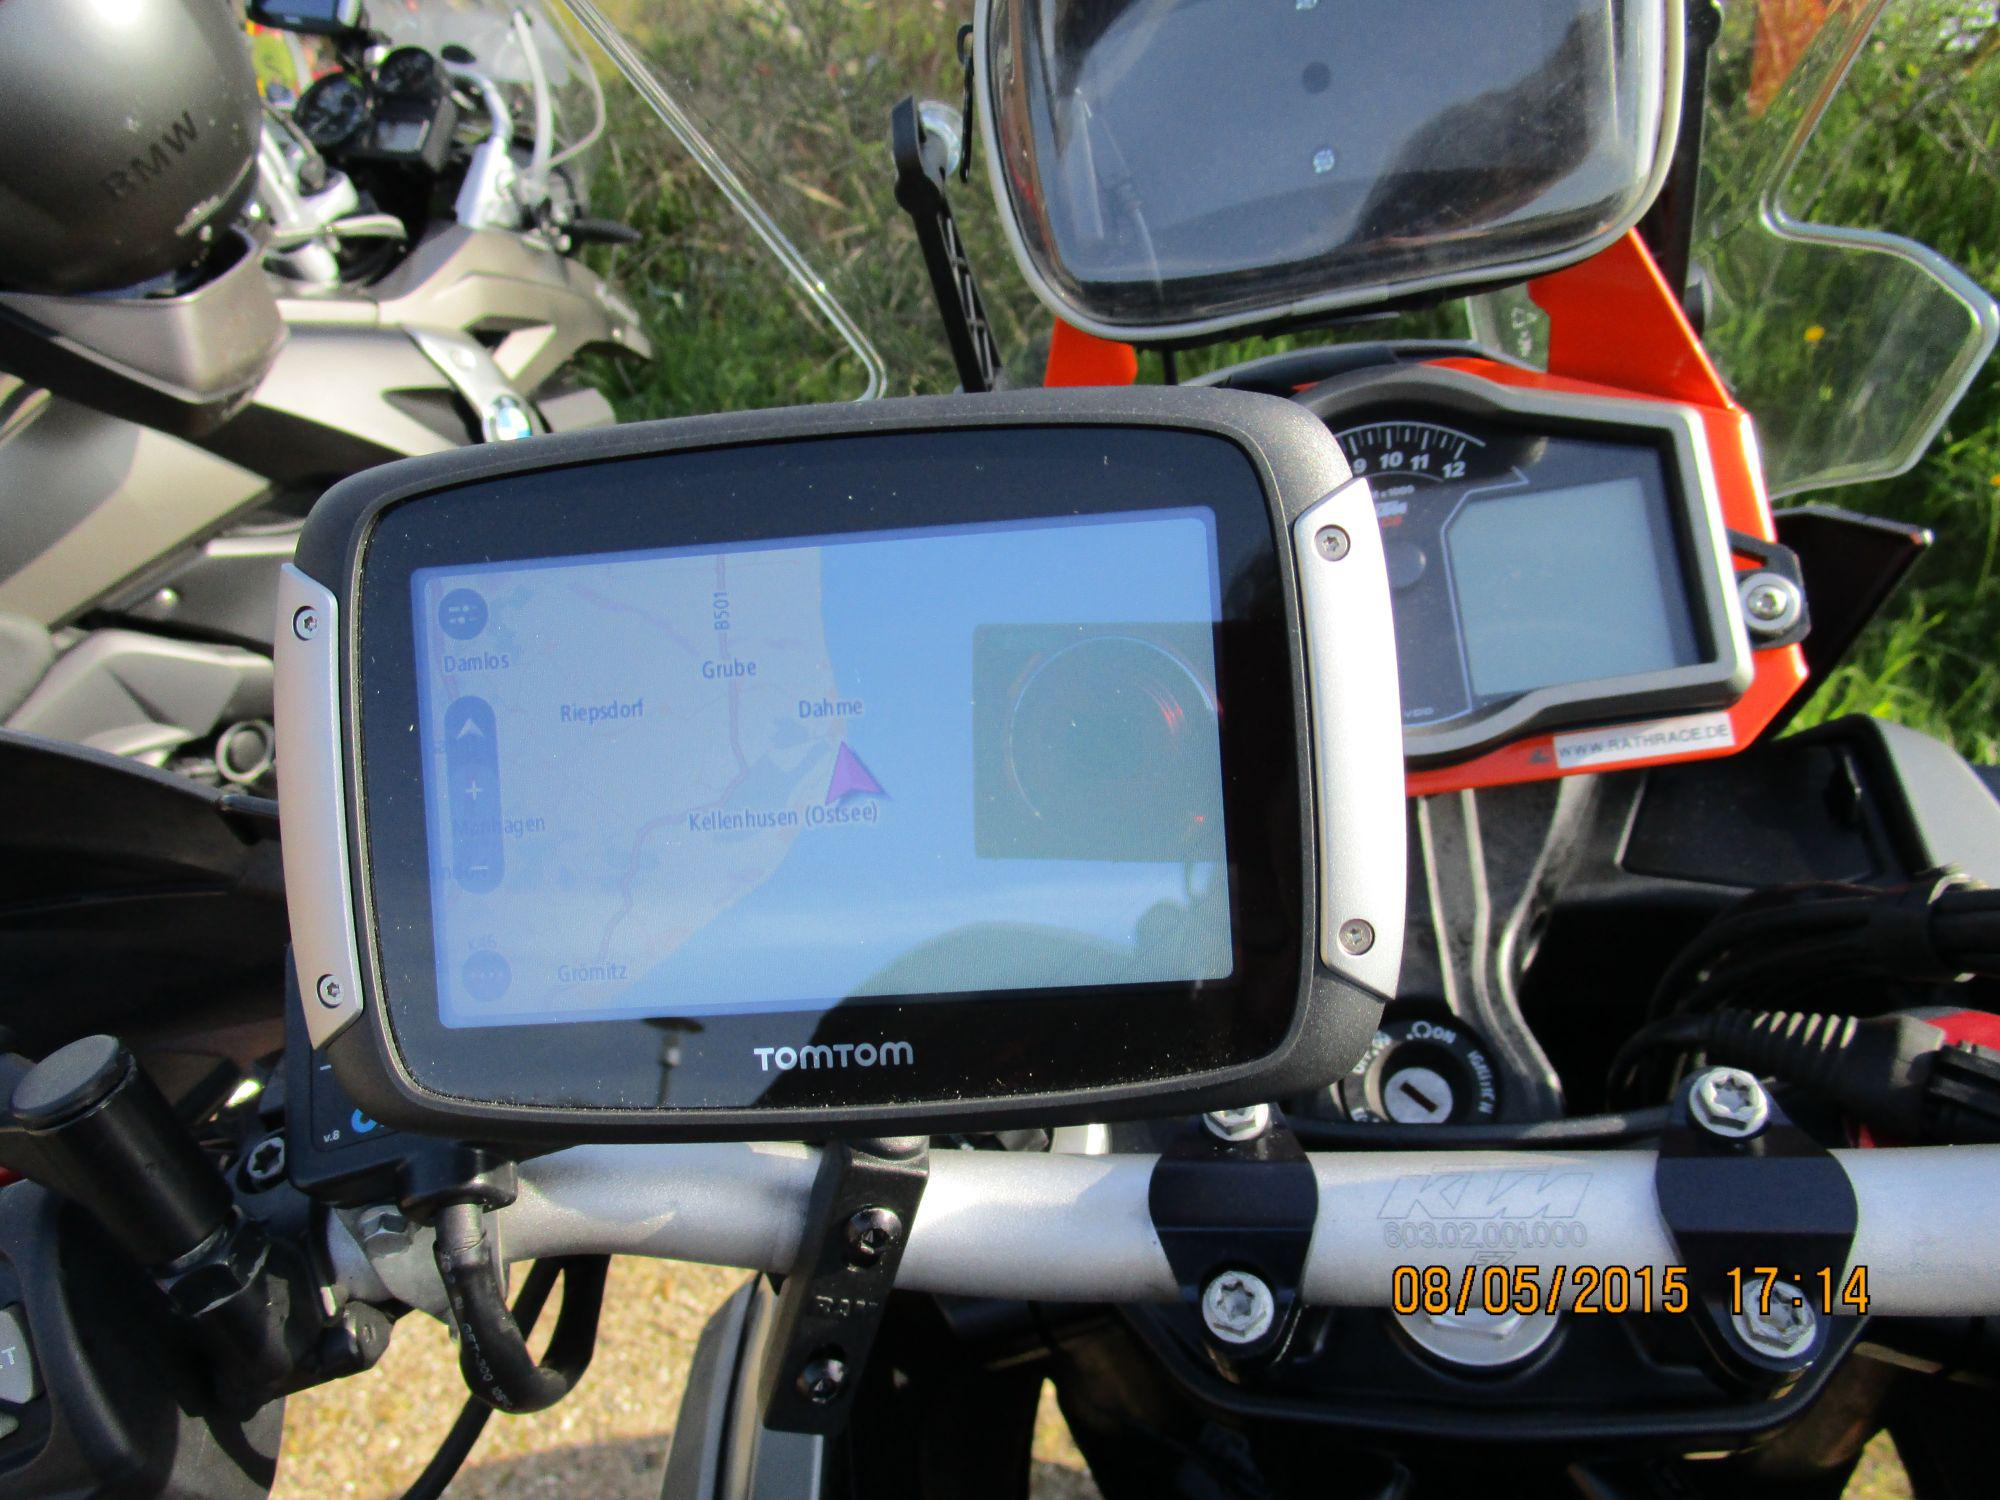 tomtom rider 400 test 2015 motorrad fotos motorrad bilder. Black Bedroom Furniture Sets. Home Design Ideas